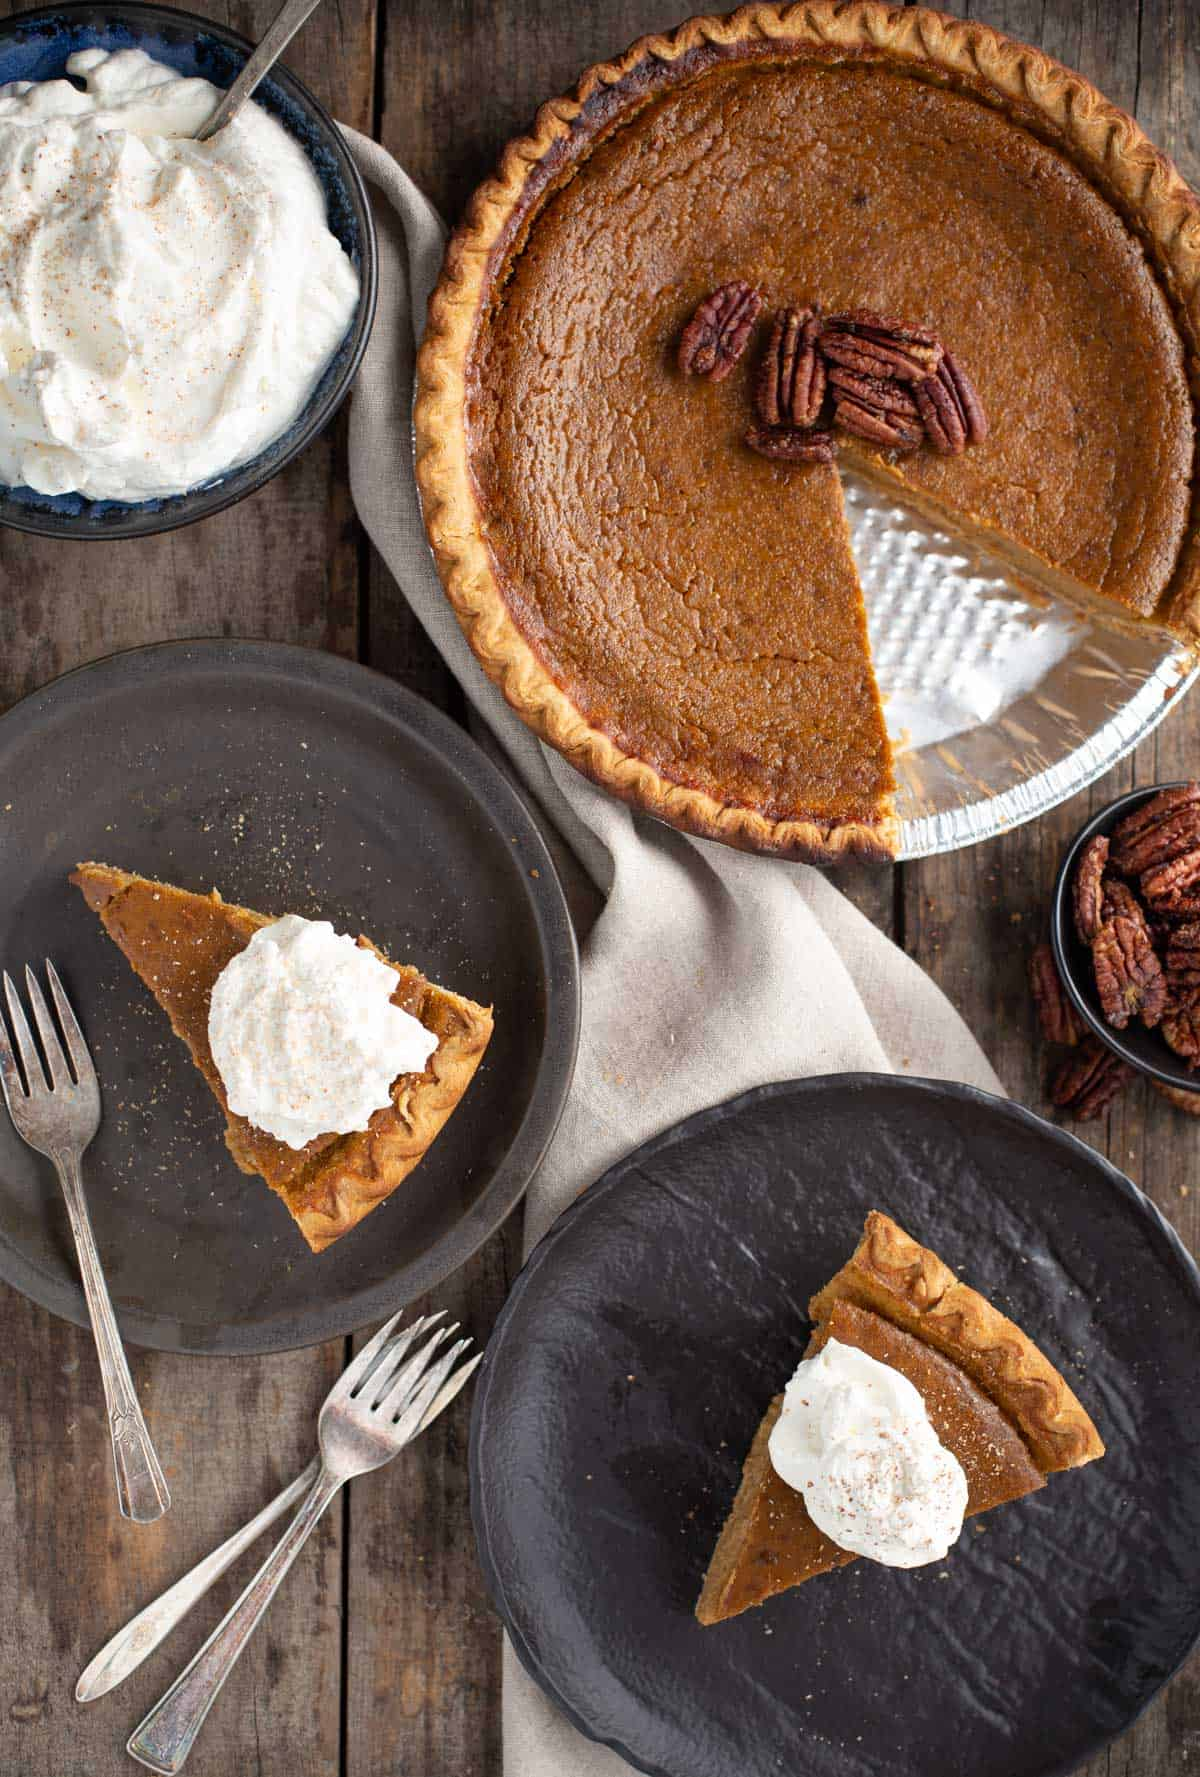 A grilled Pumpkin Pie with candied pecans and two slices on a plates